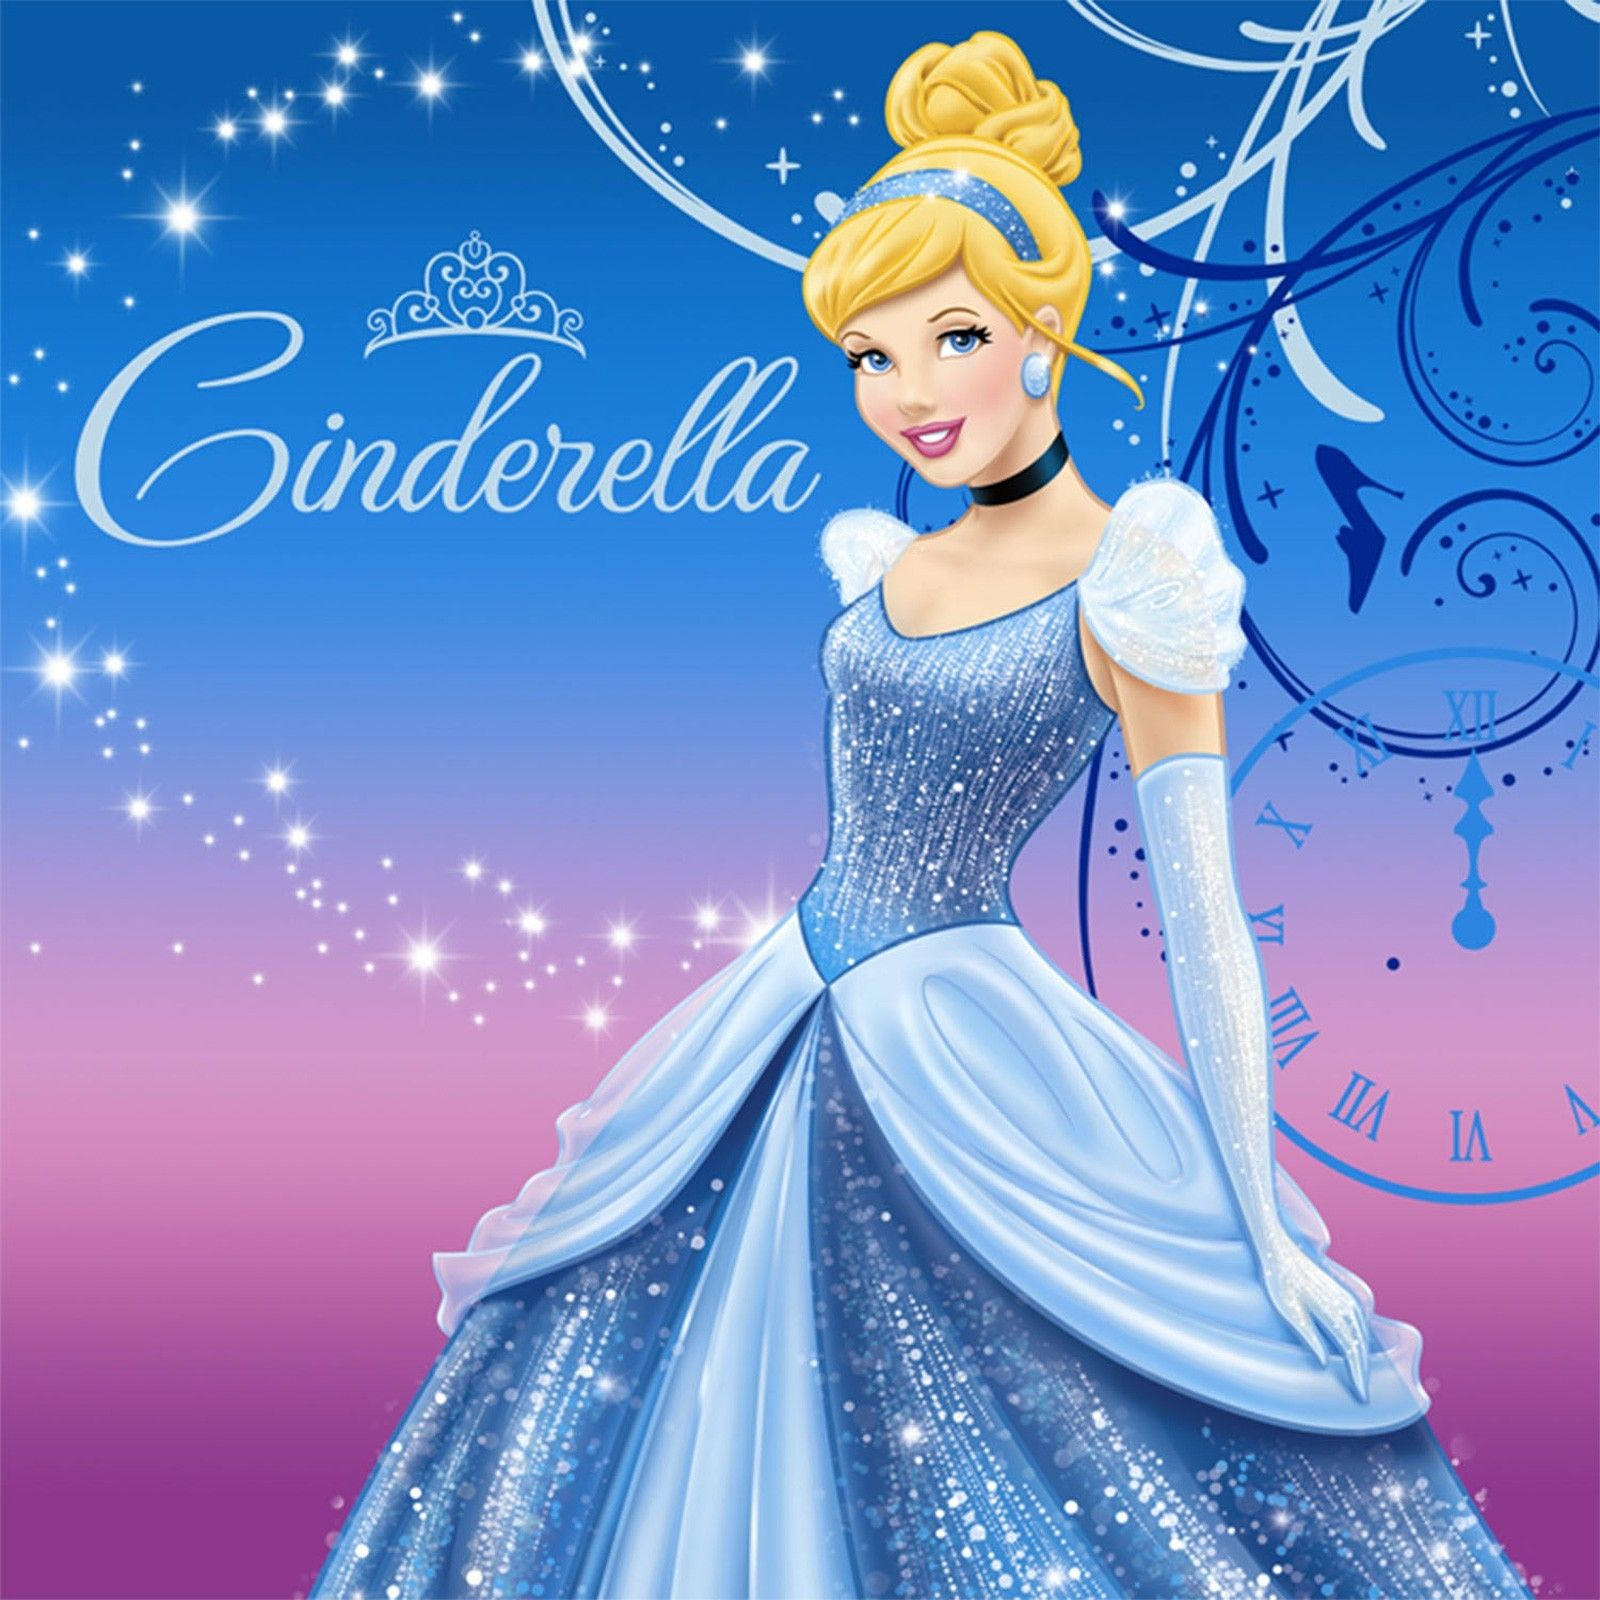 Cinderella cinderella pinterest cinderella wallpaper have courage and be kind free cinderella wallpaper for your thecheapjerseys Gallery